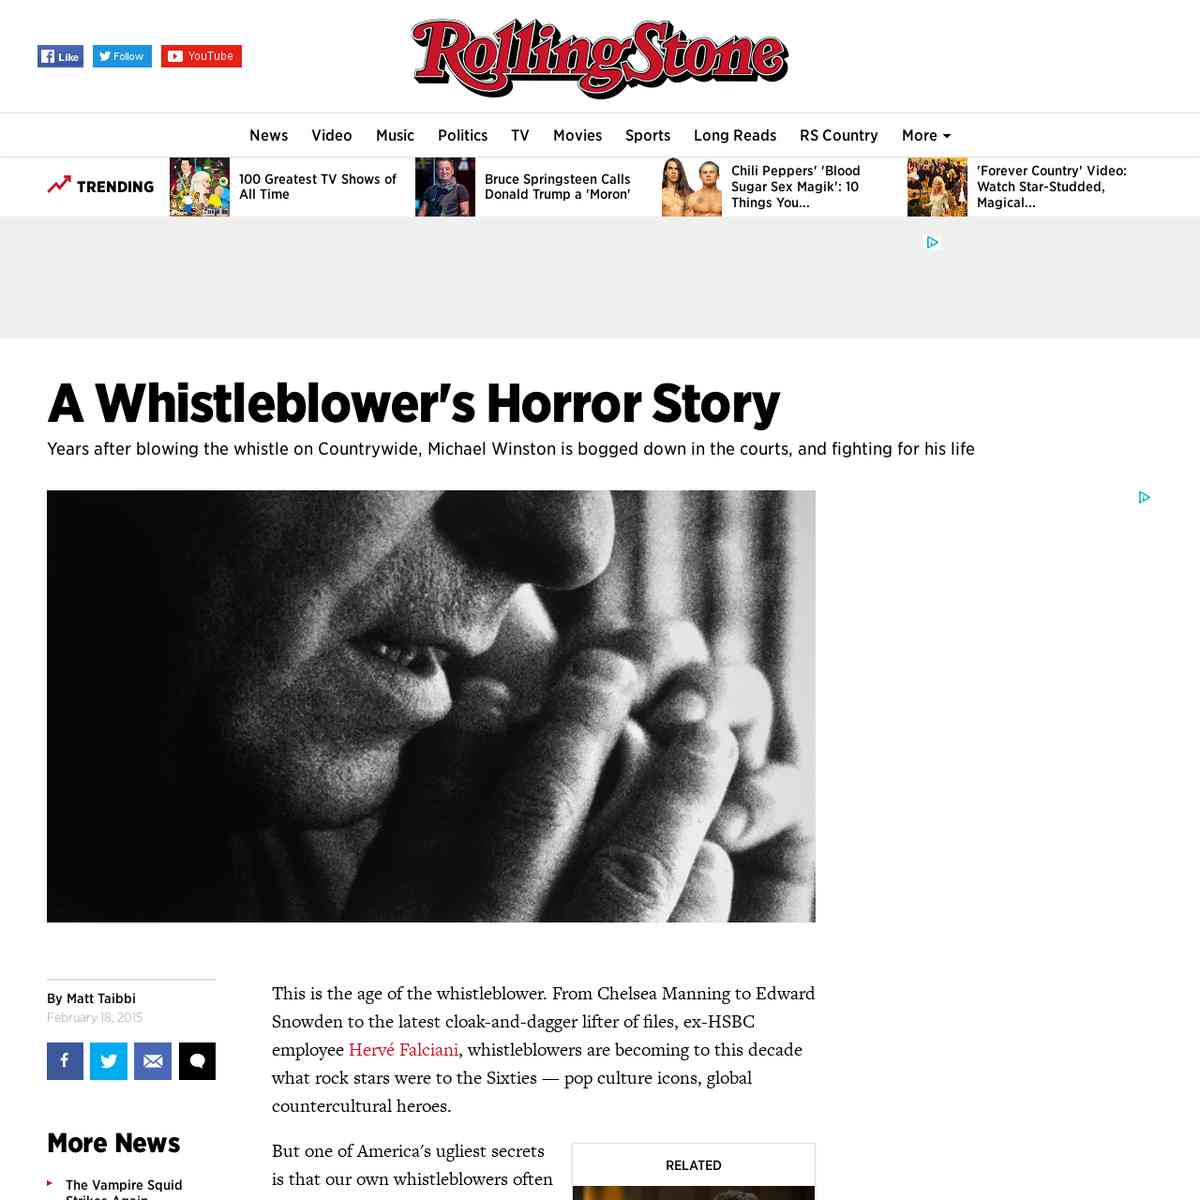 A Whistleblower's Horror Story | Rolling Stone